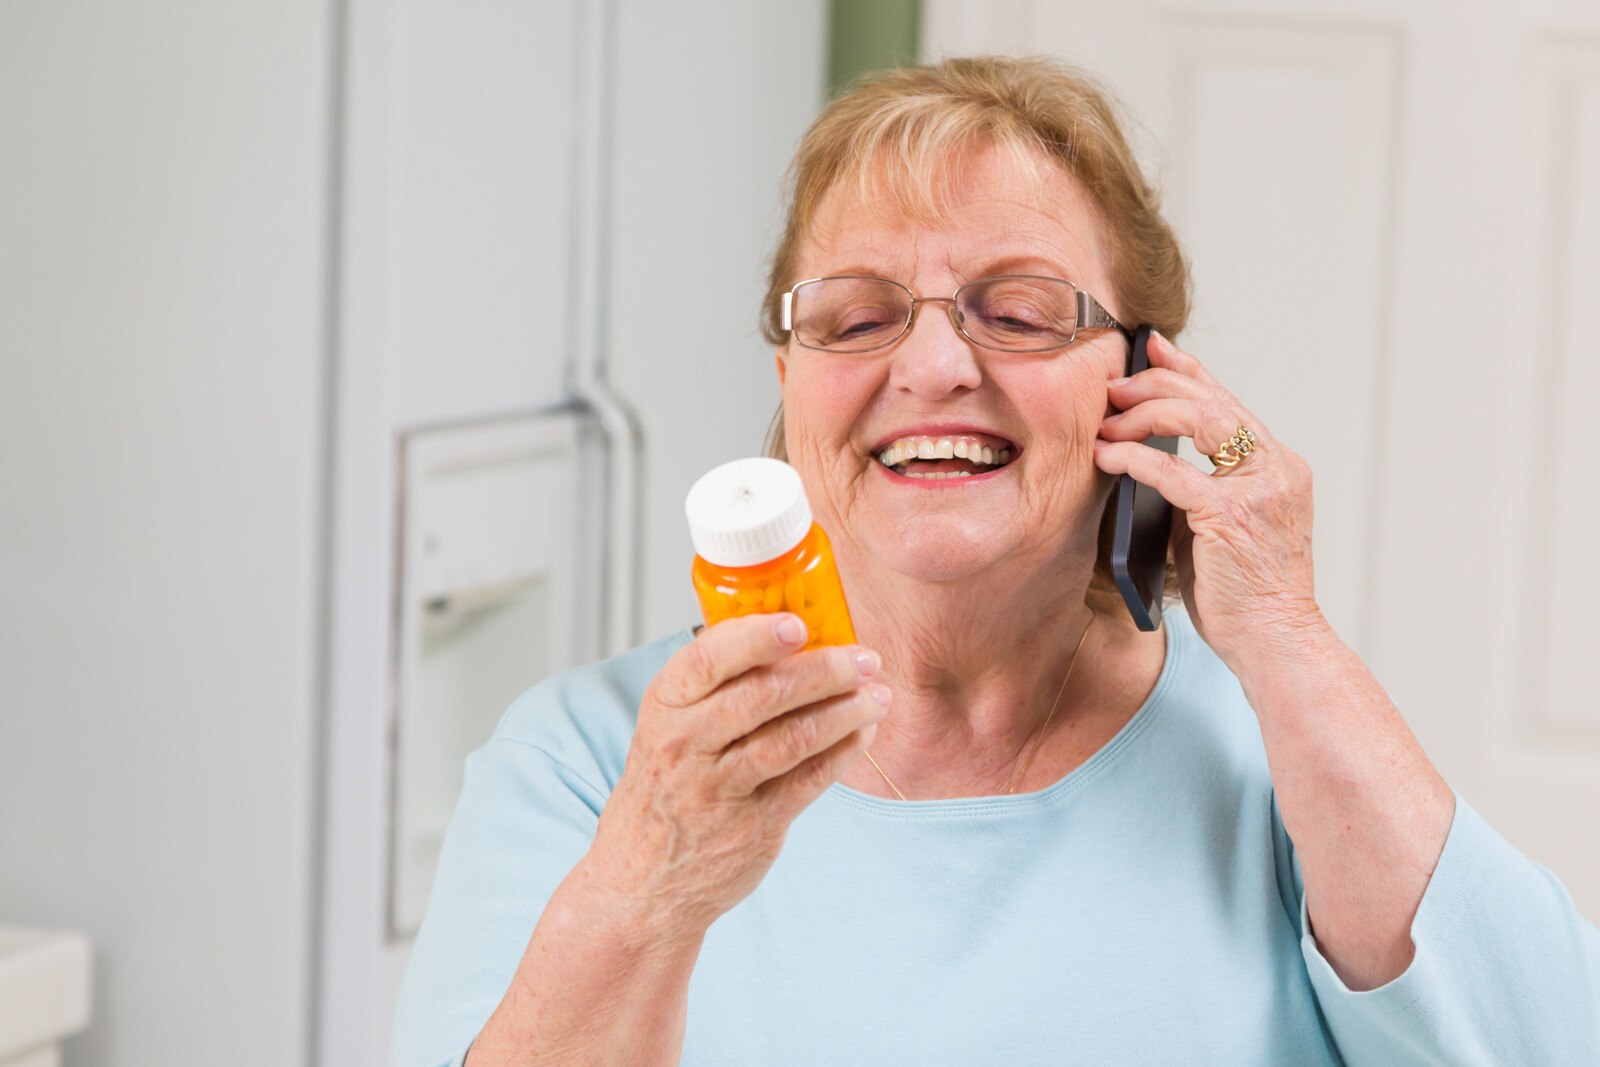 Smiling senior woman on the phone reading off a pill bottle